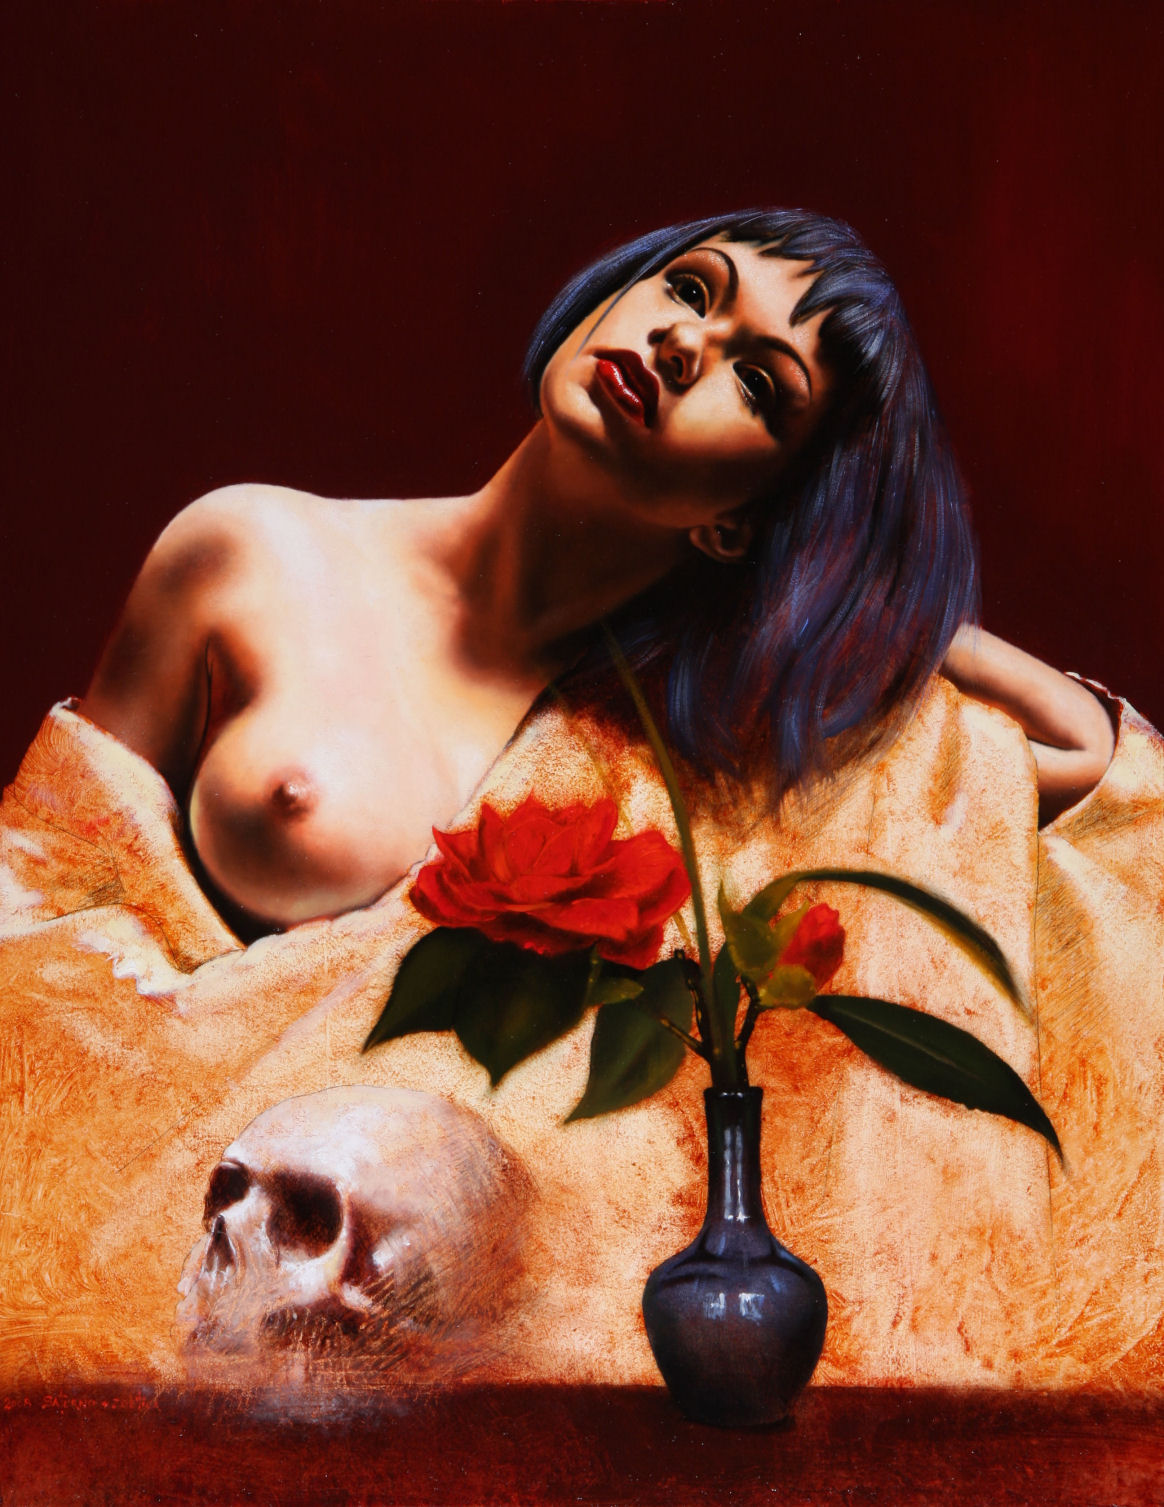 Cult of the Flesh: s_butto_paintings_4_20110820_1245567766.jpg